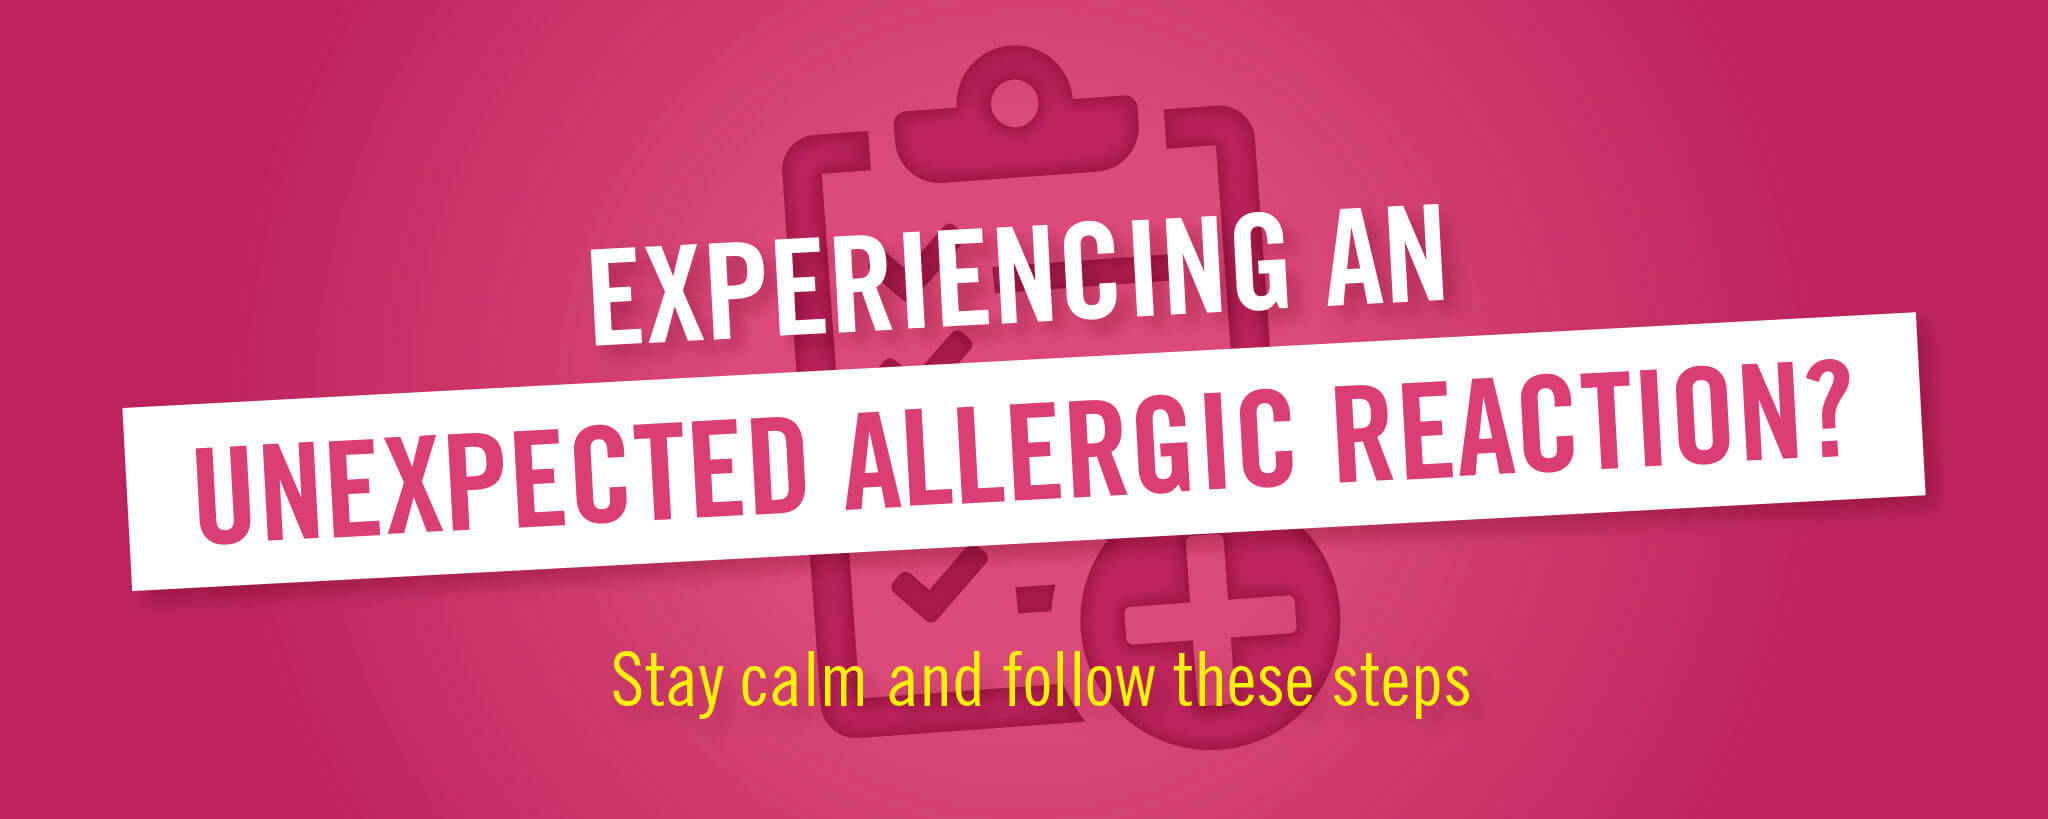 Unexpected Allergic Reaction